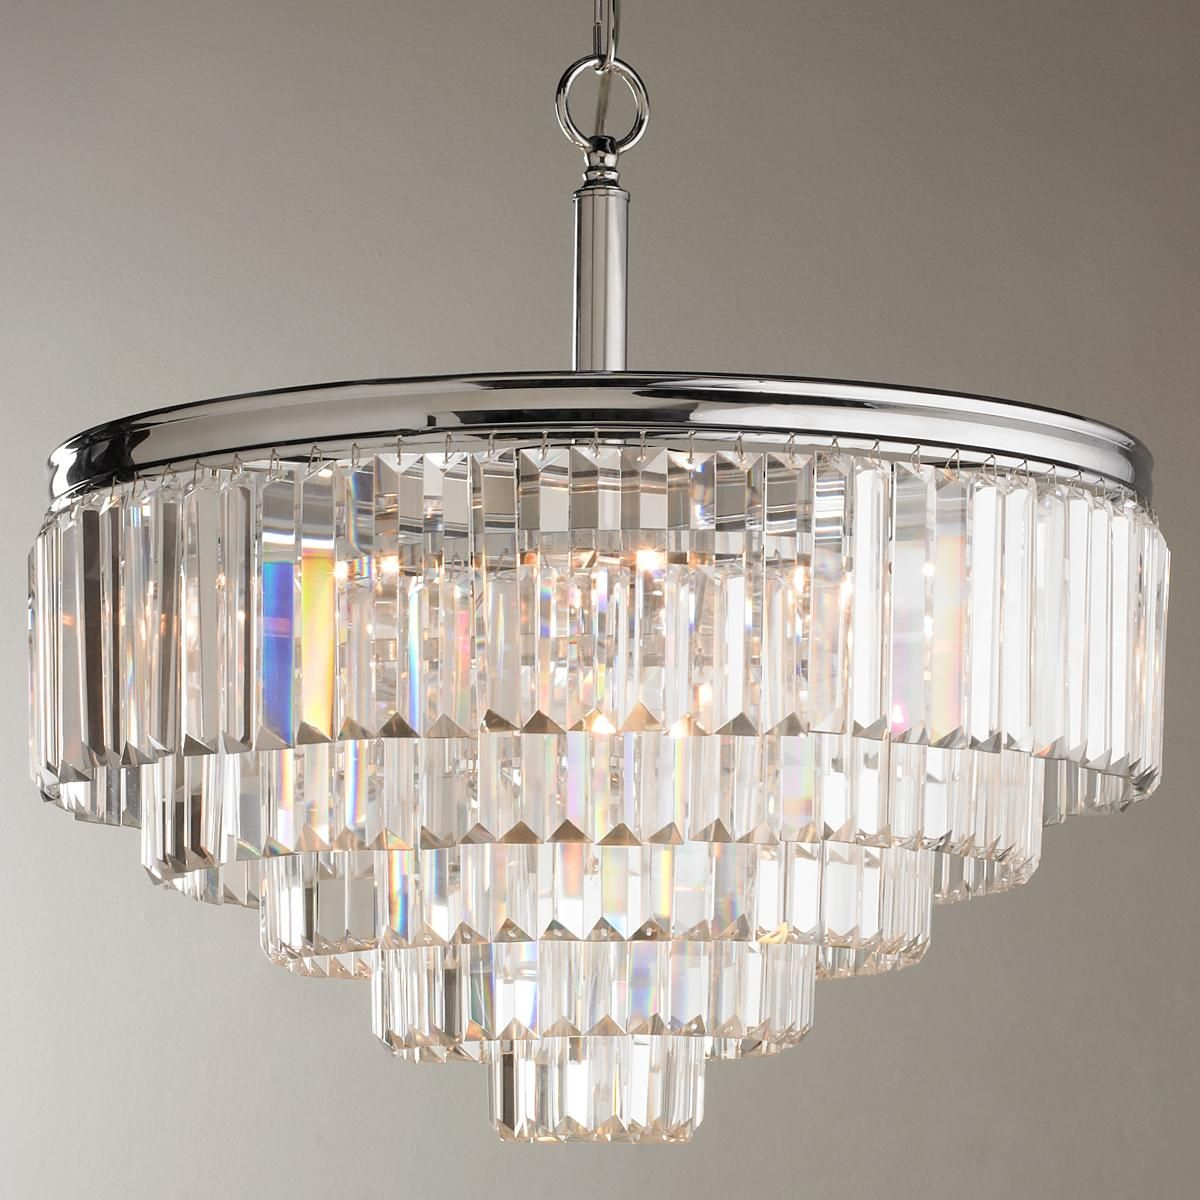 prism alibaba prisms suppliers wholesale and com glass hanging manufacturers showroom crystal at acrylic chandelier